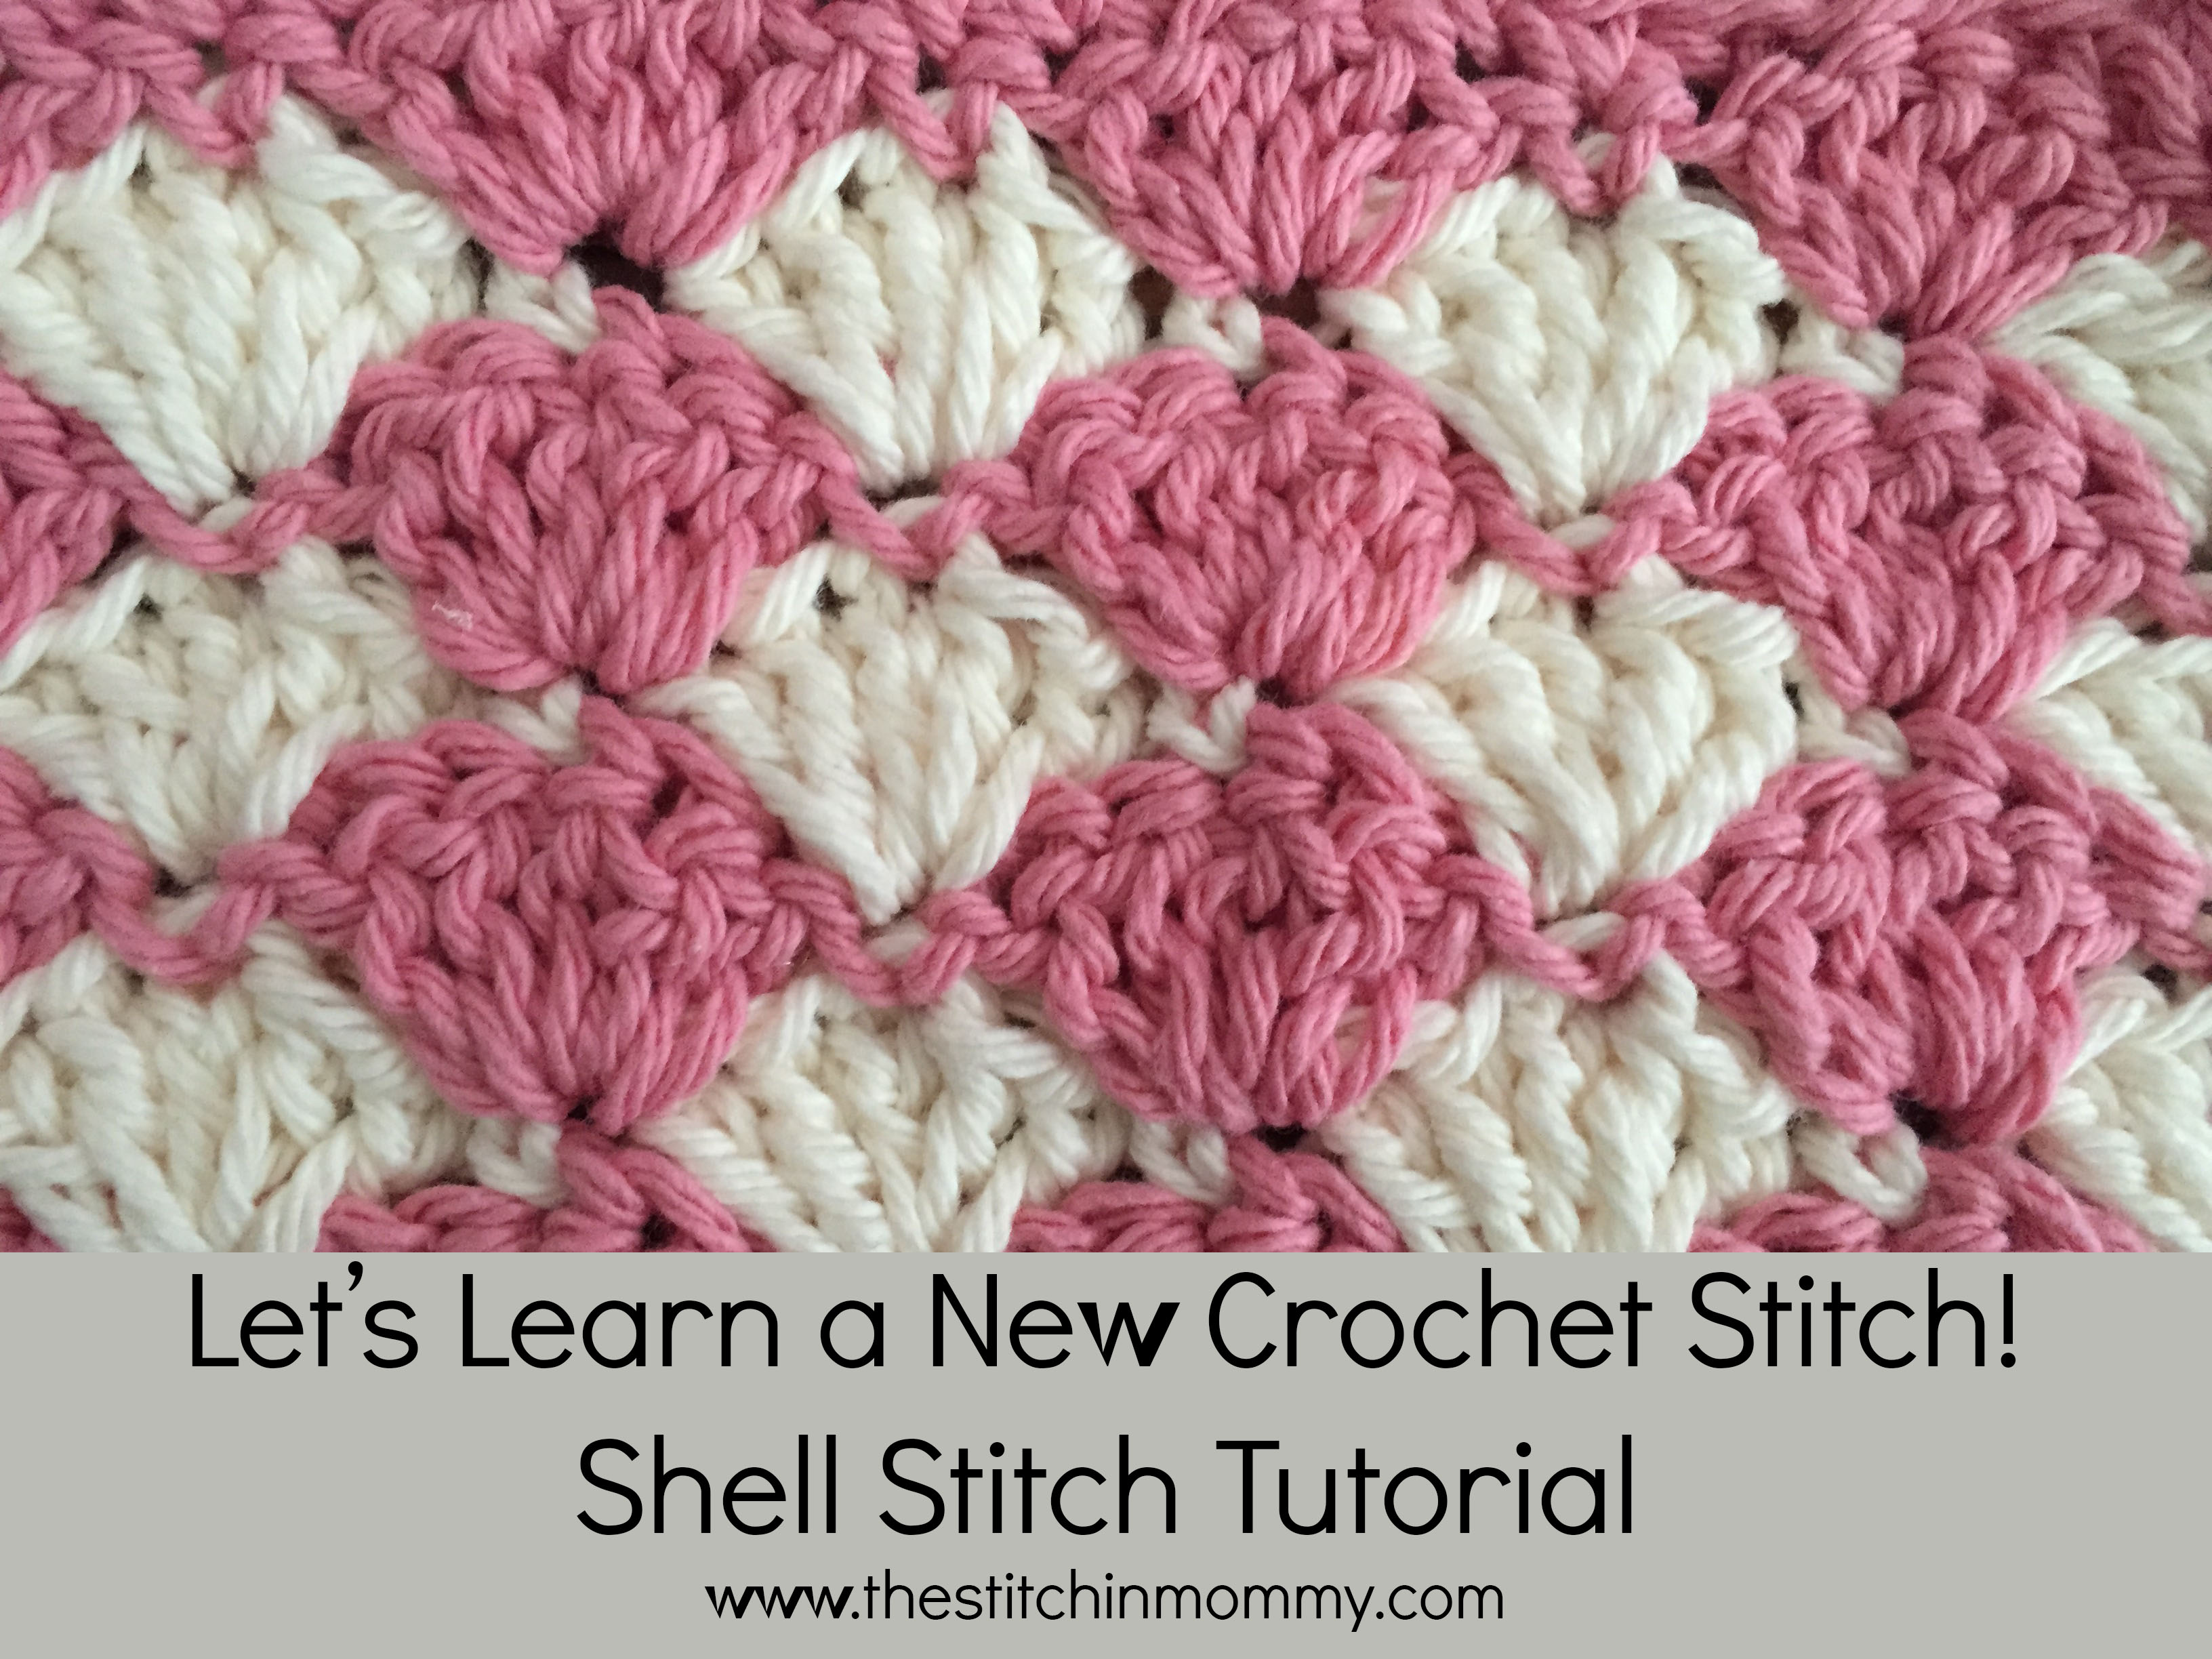 Crochet Stitches Shell Video : Shell Stitch Tutorial - The Stitchin Mommy